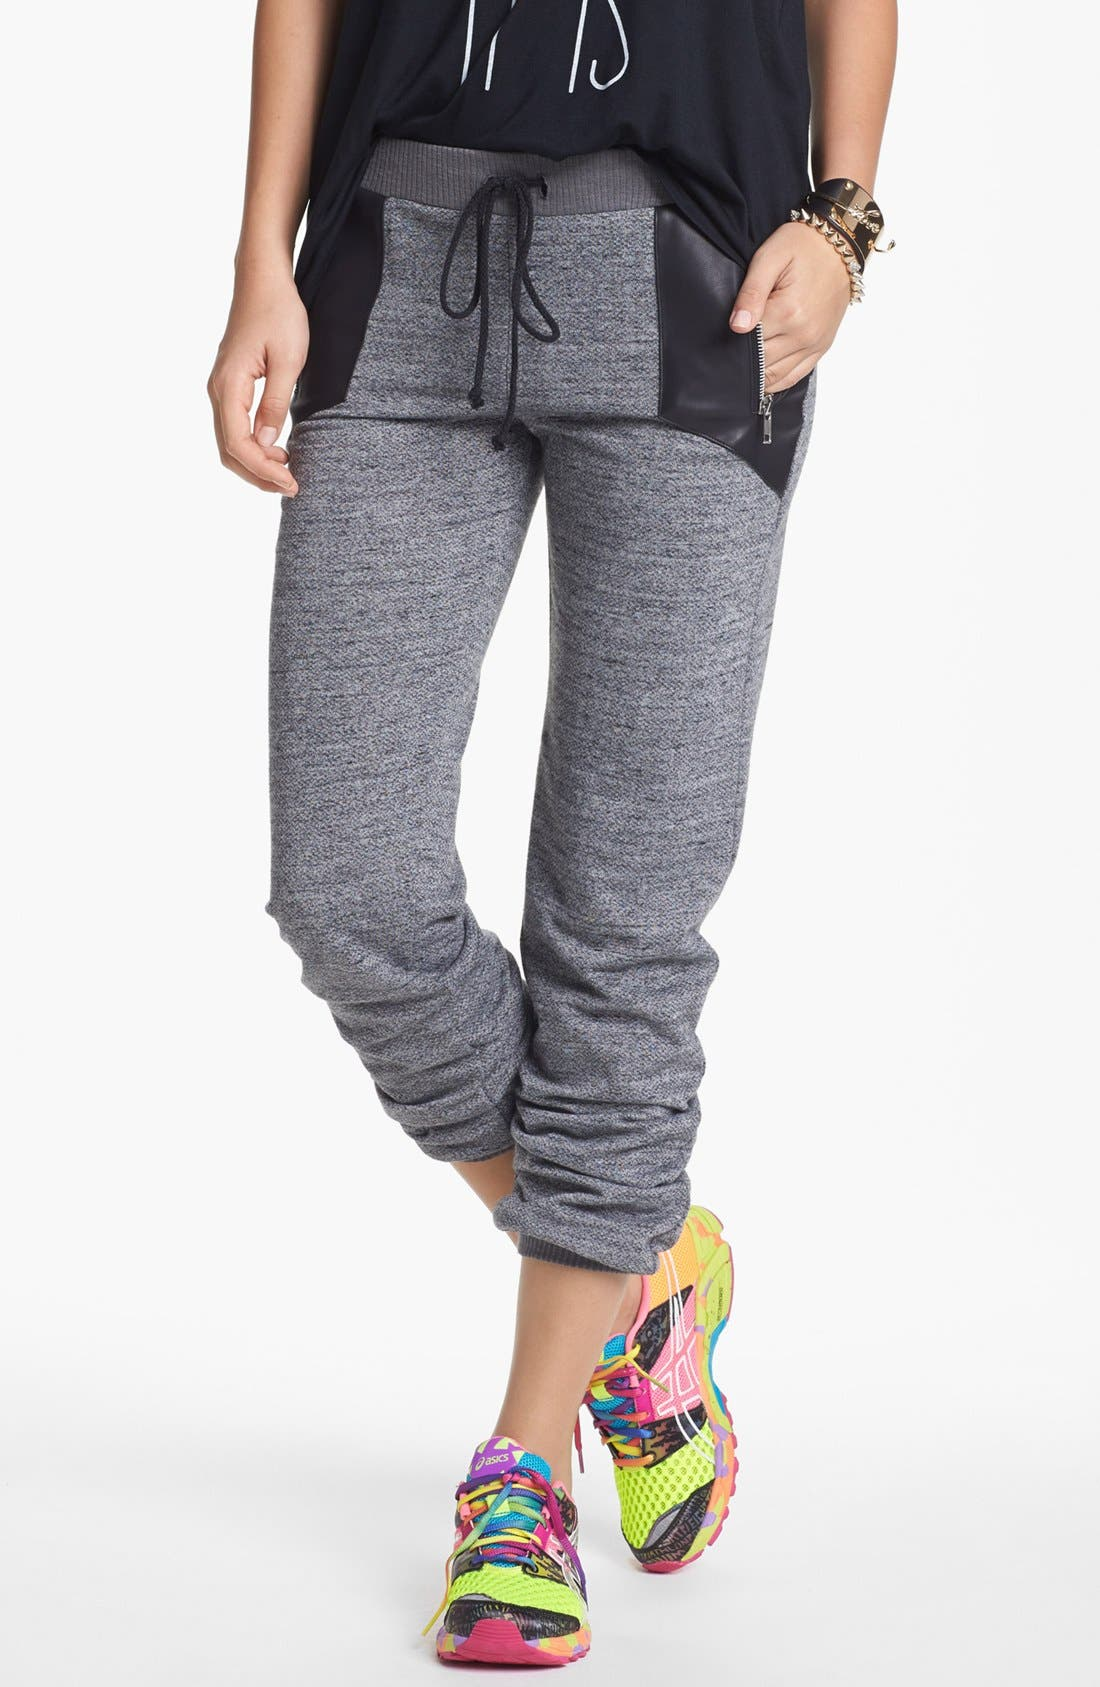 Shop for junior womens sweat pants online at Target. Free shipping on purchases over $35 and save 5% every day with your Target REDcard.